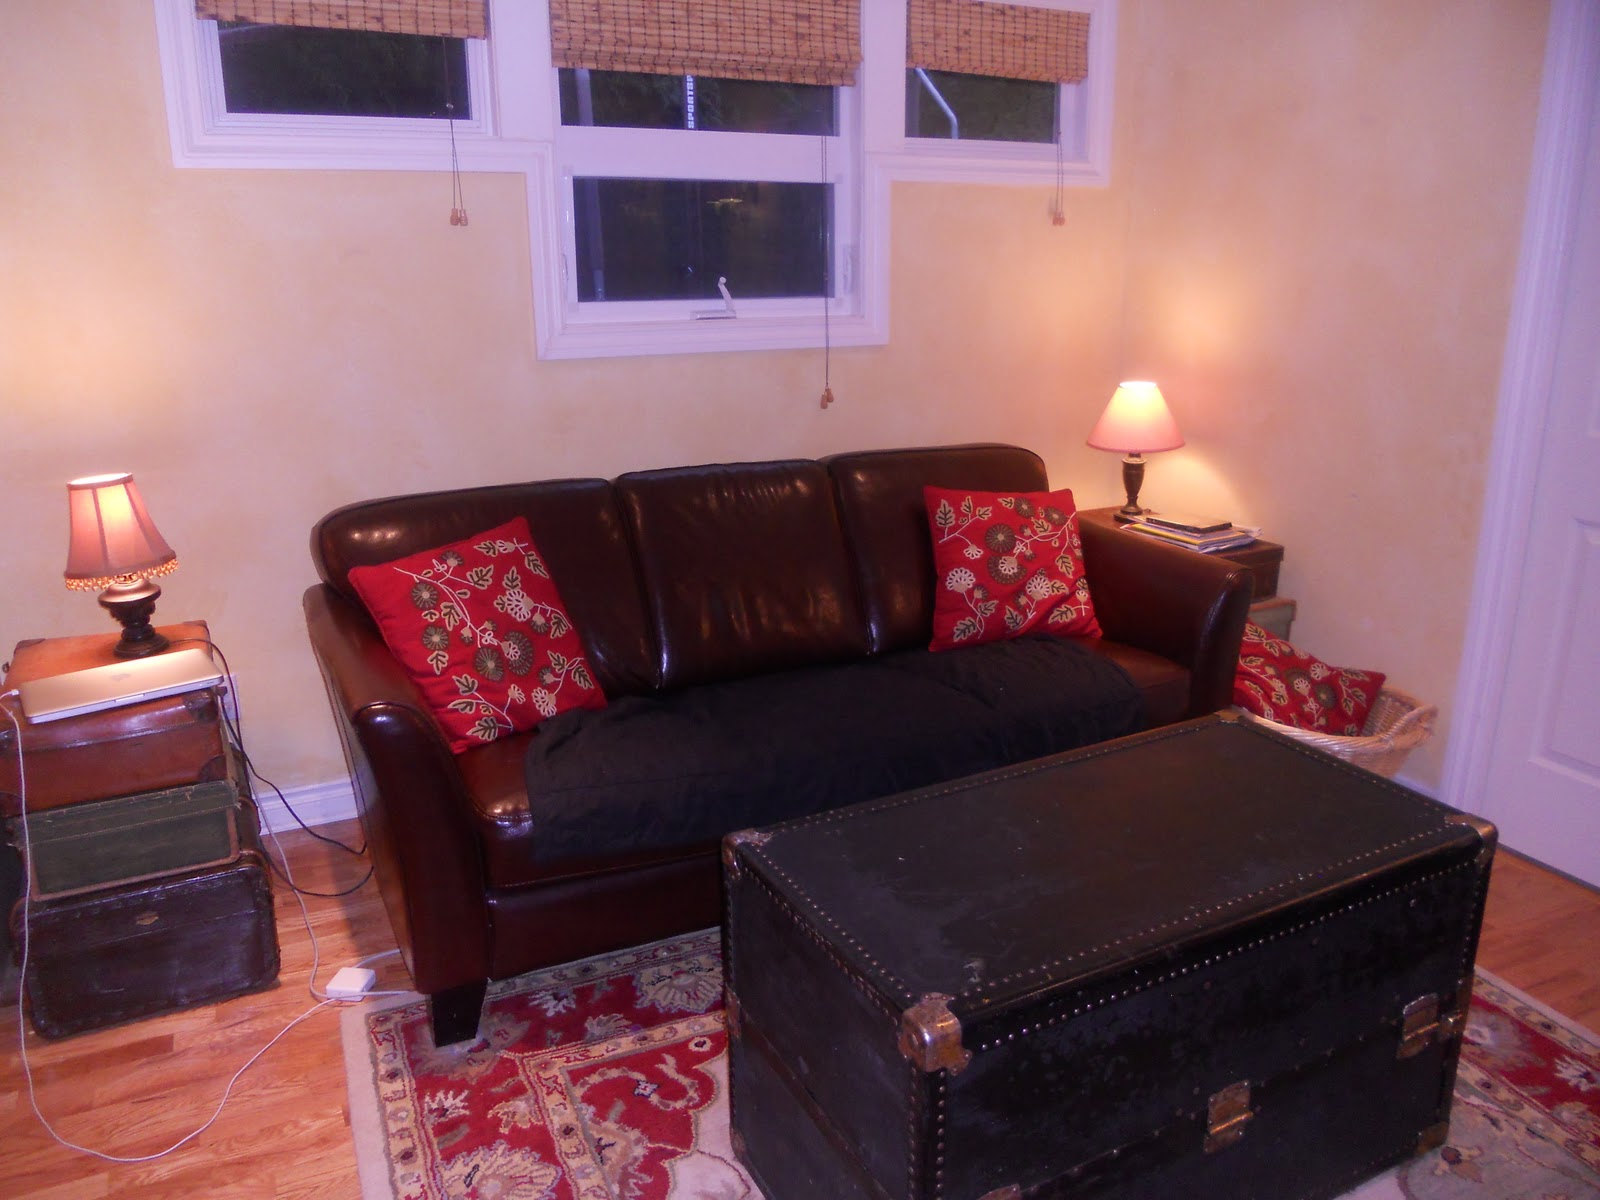 And Our Living Room Sofa